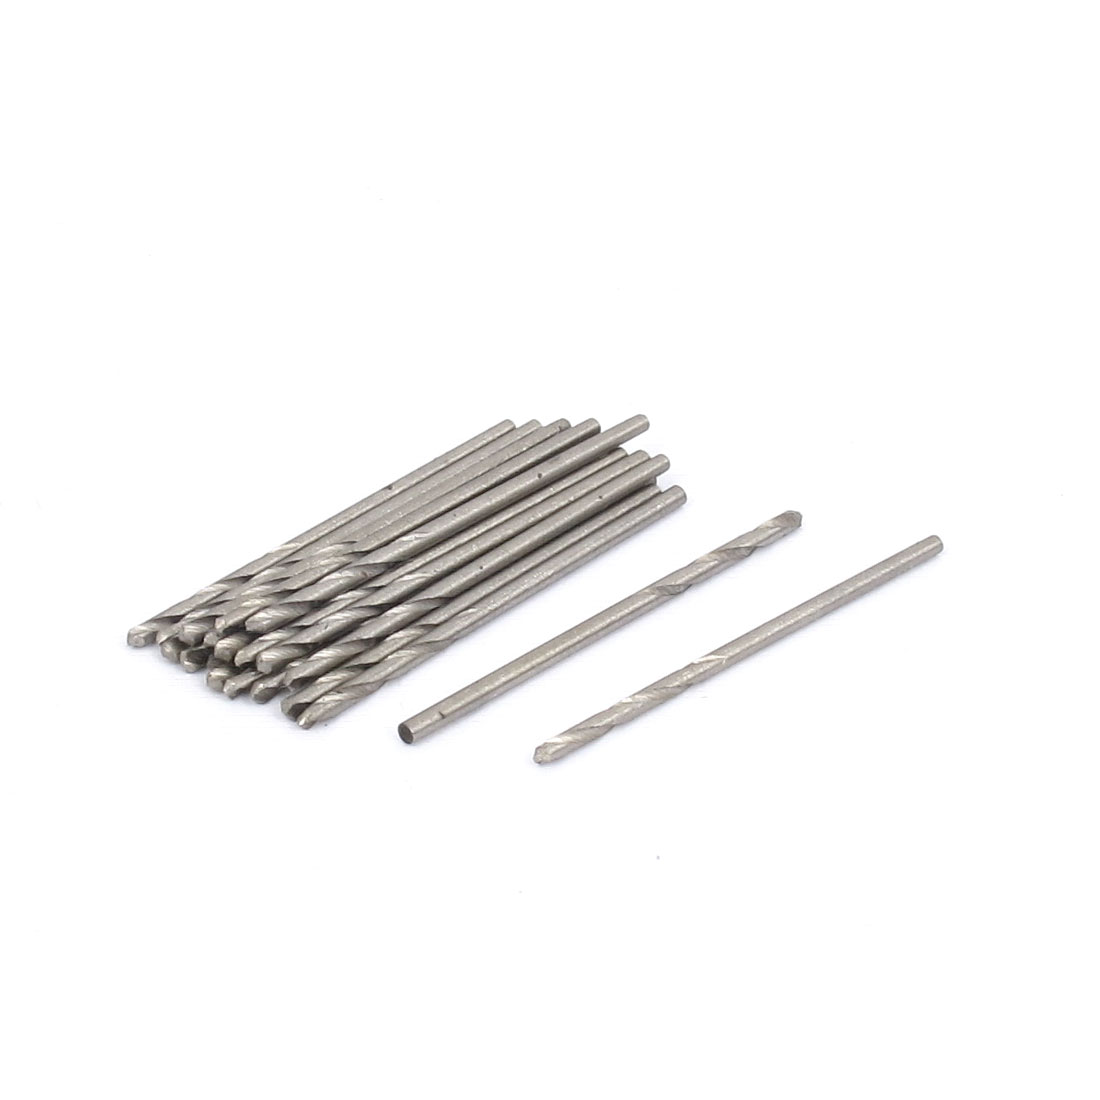 Electrical Drill HSS Straight Shank Twist Drilling Bits 1.5mm Diameter Tip 20pcs